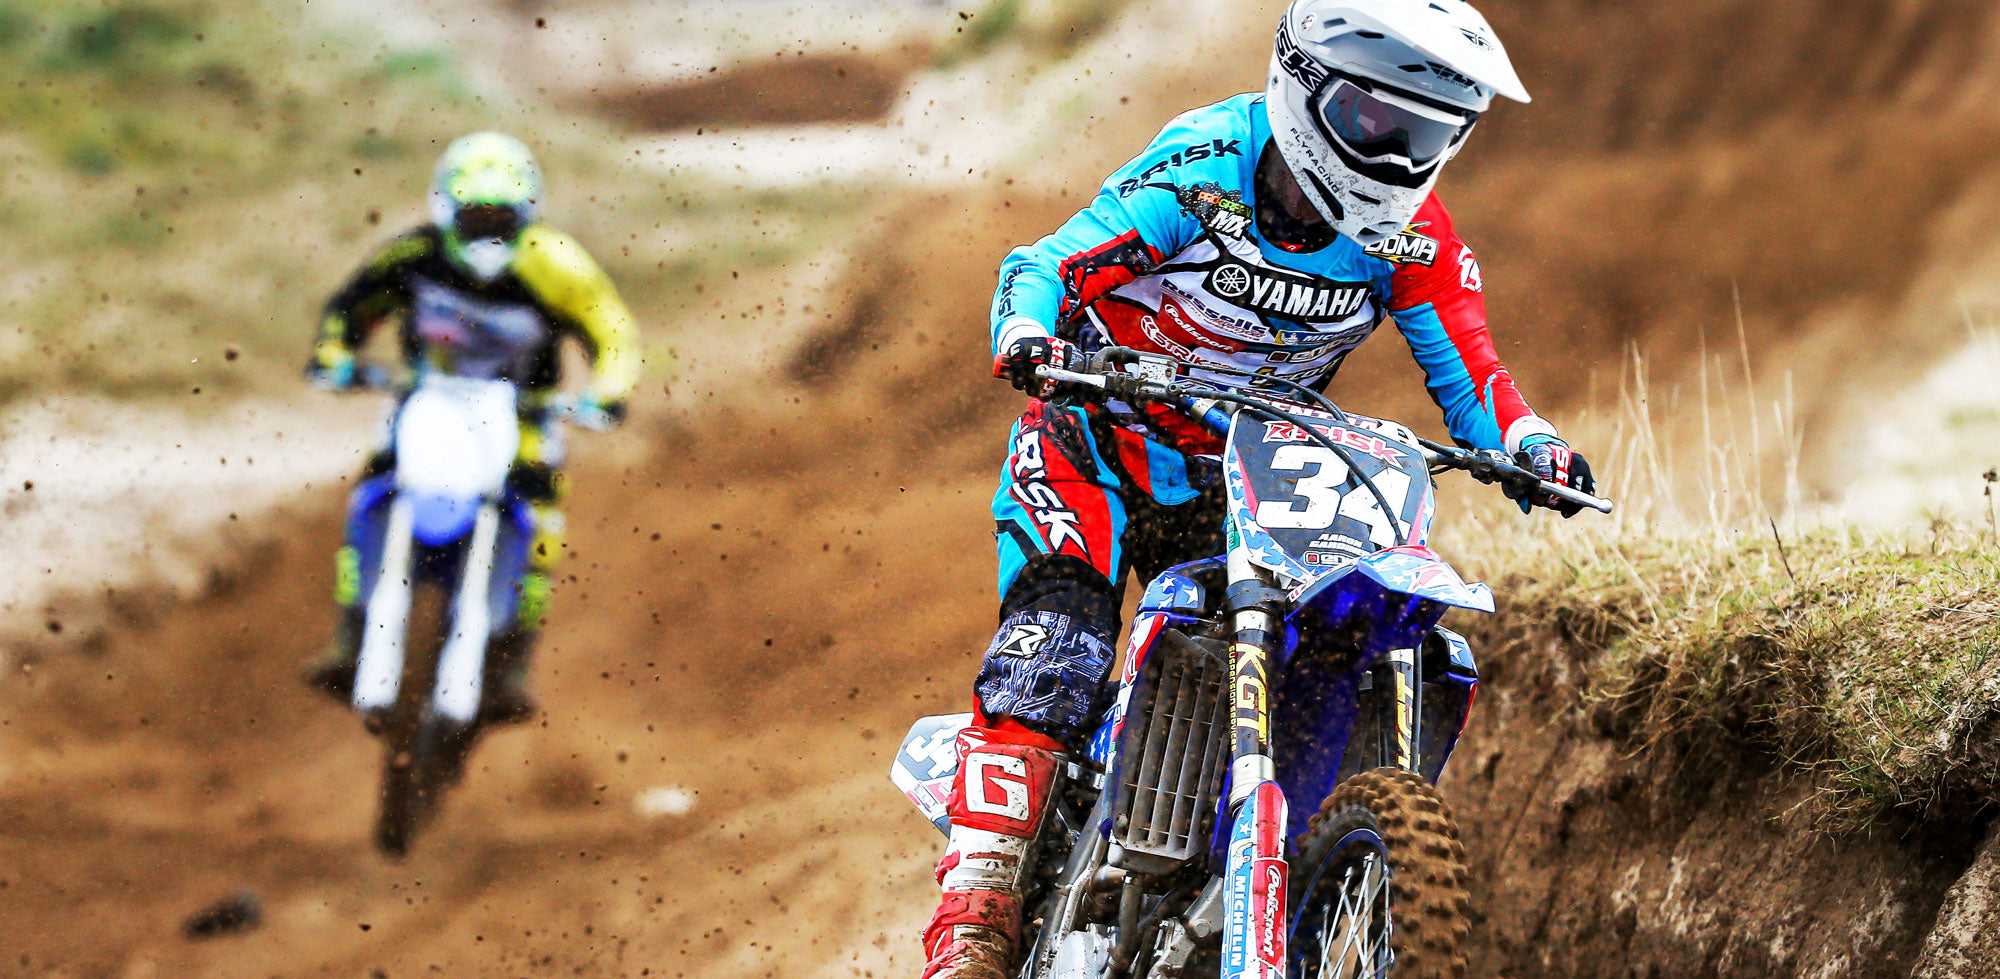 J.A.C. MX Goggles on the track